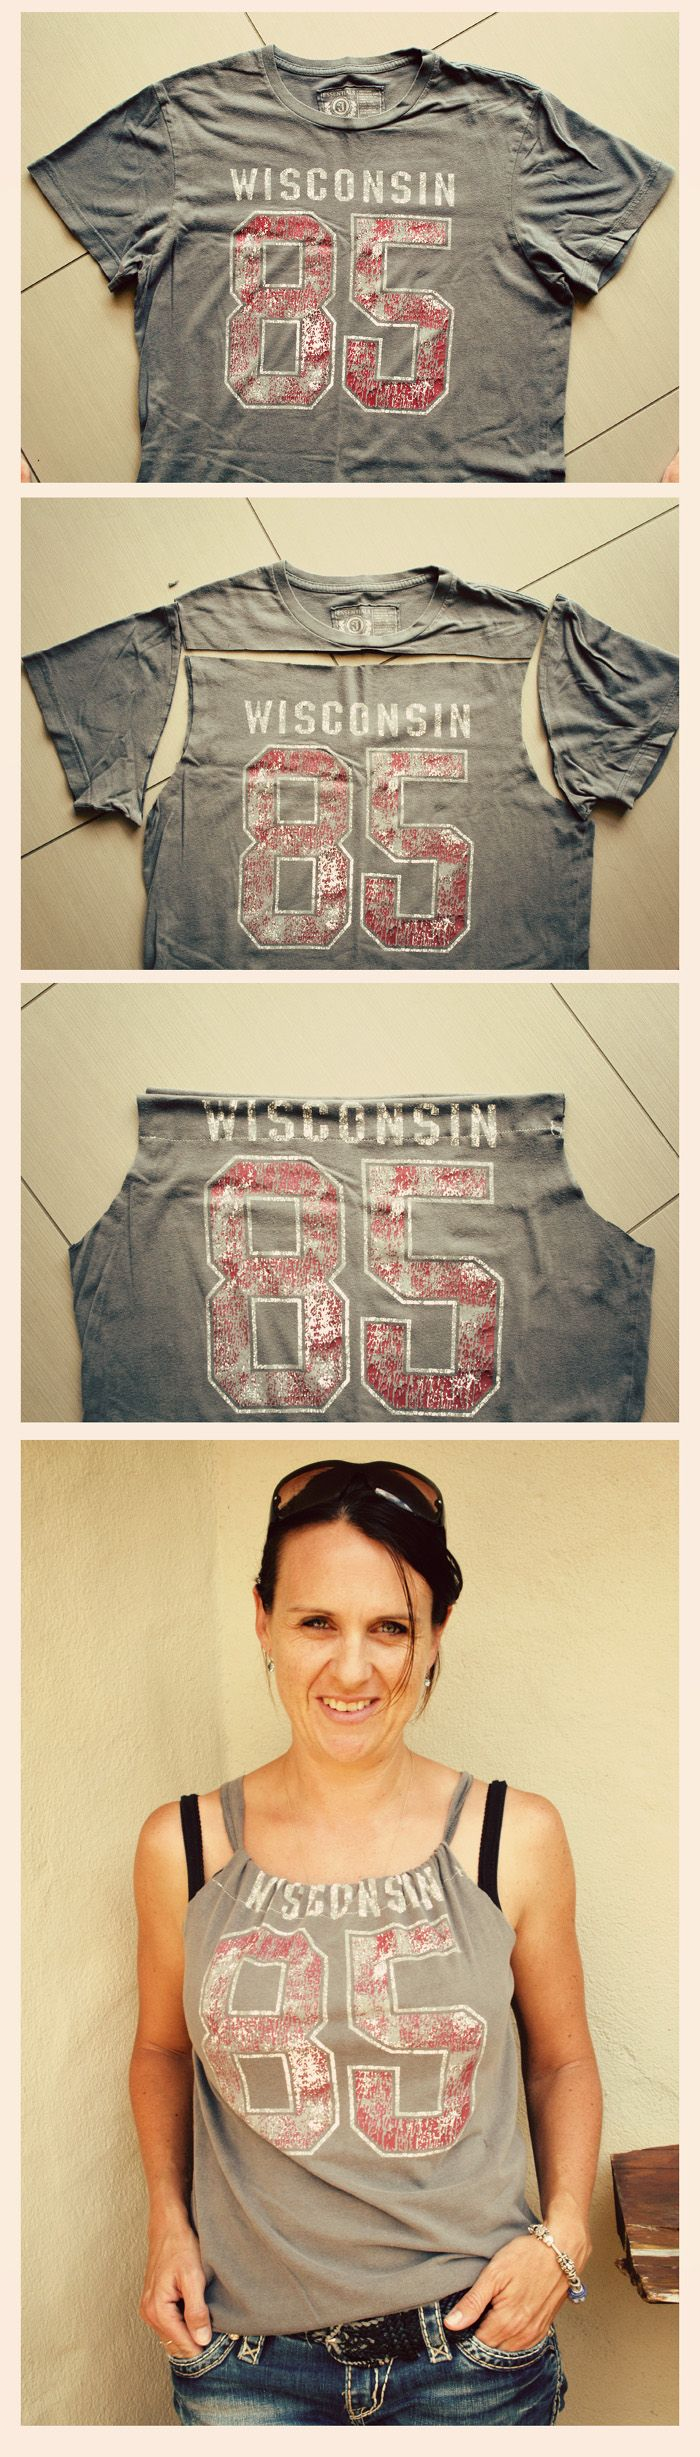 Another tshirt recycle idea!